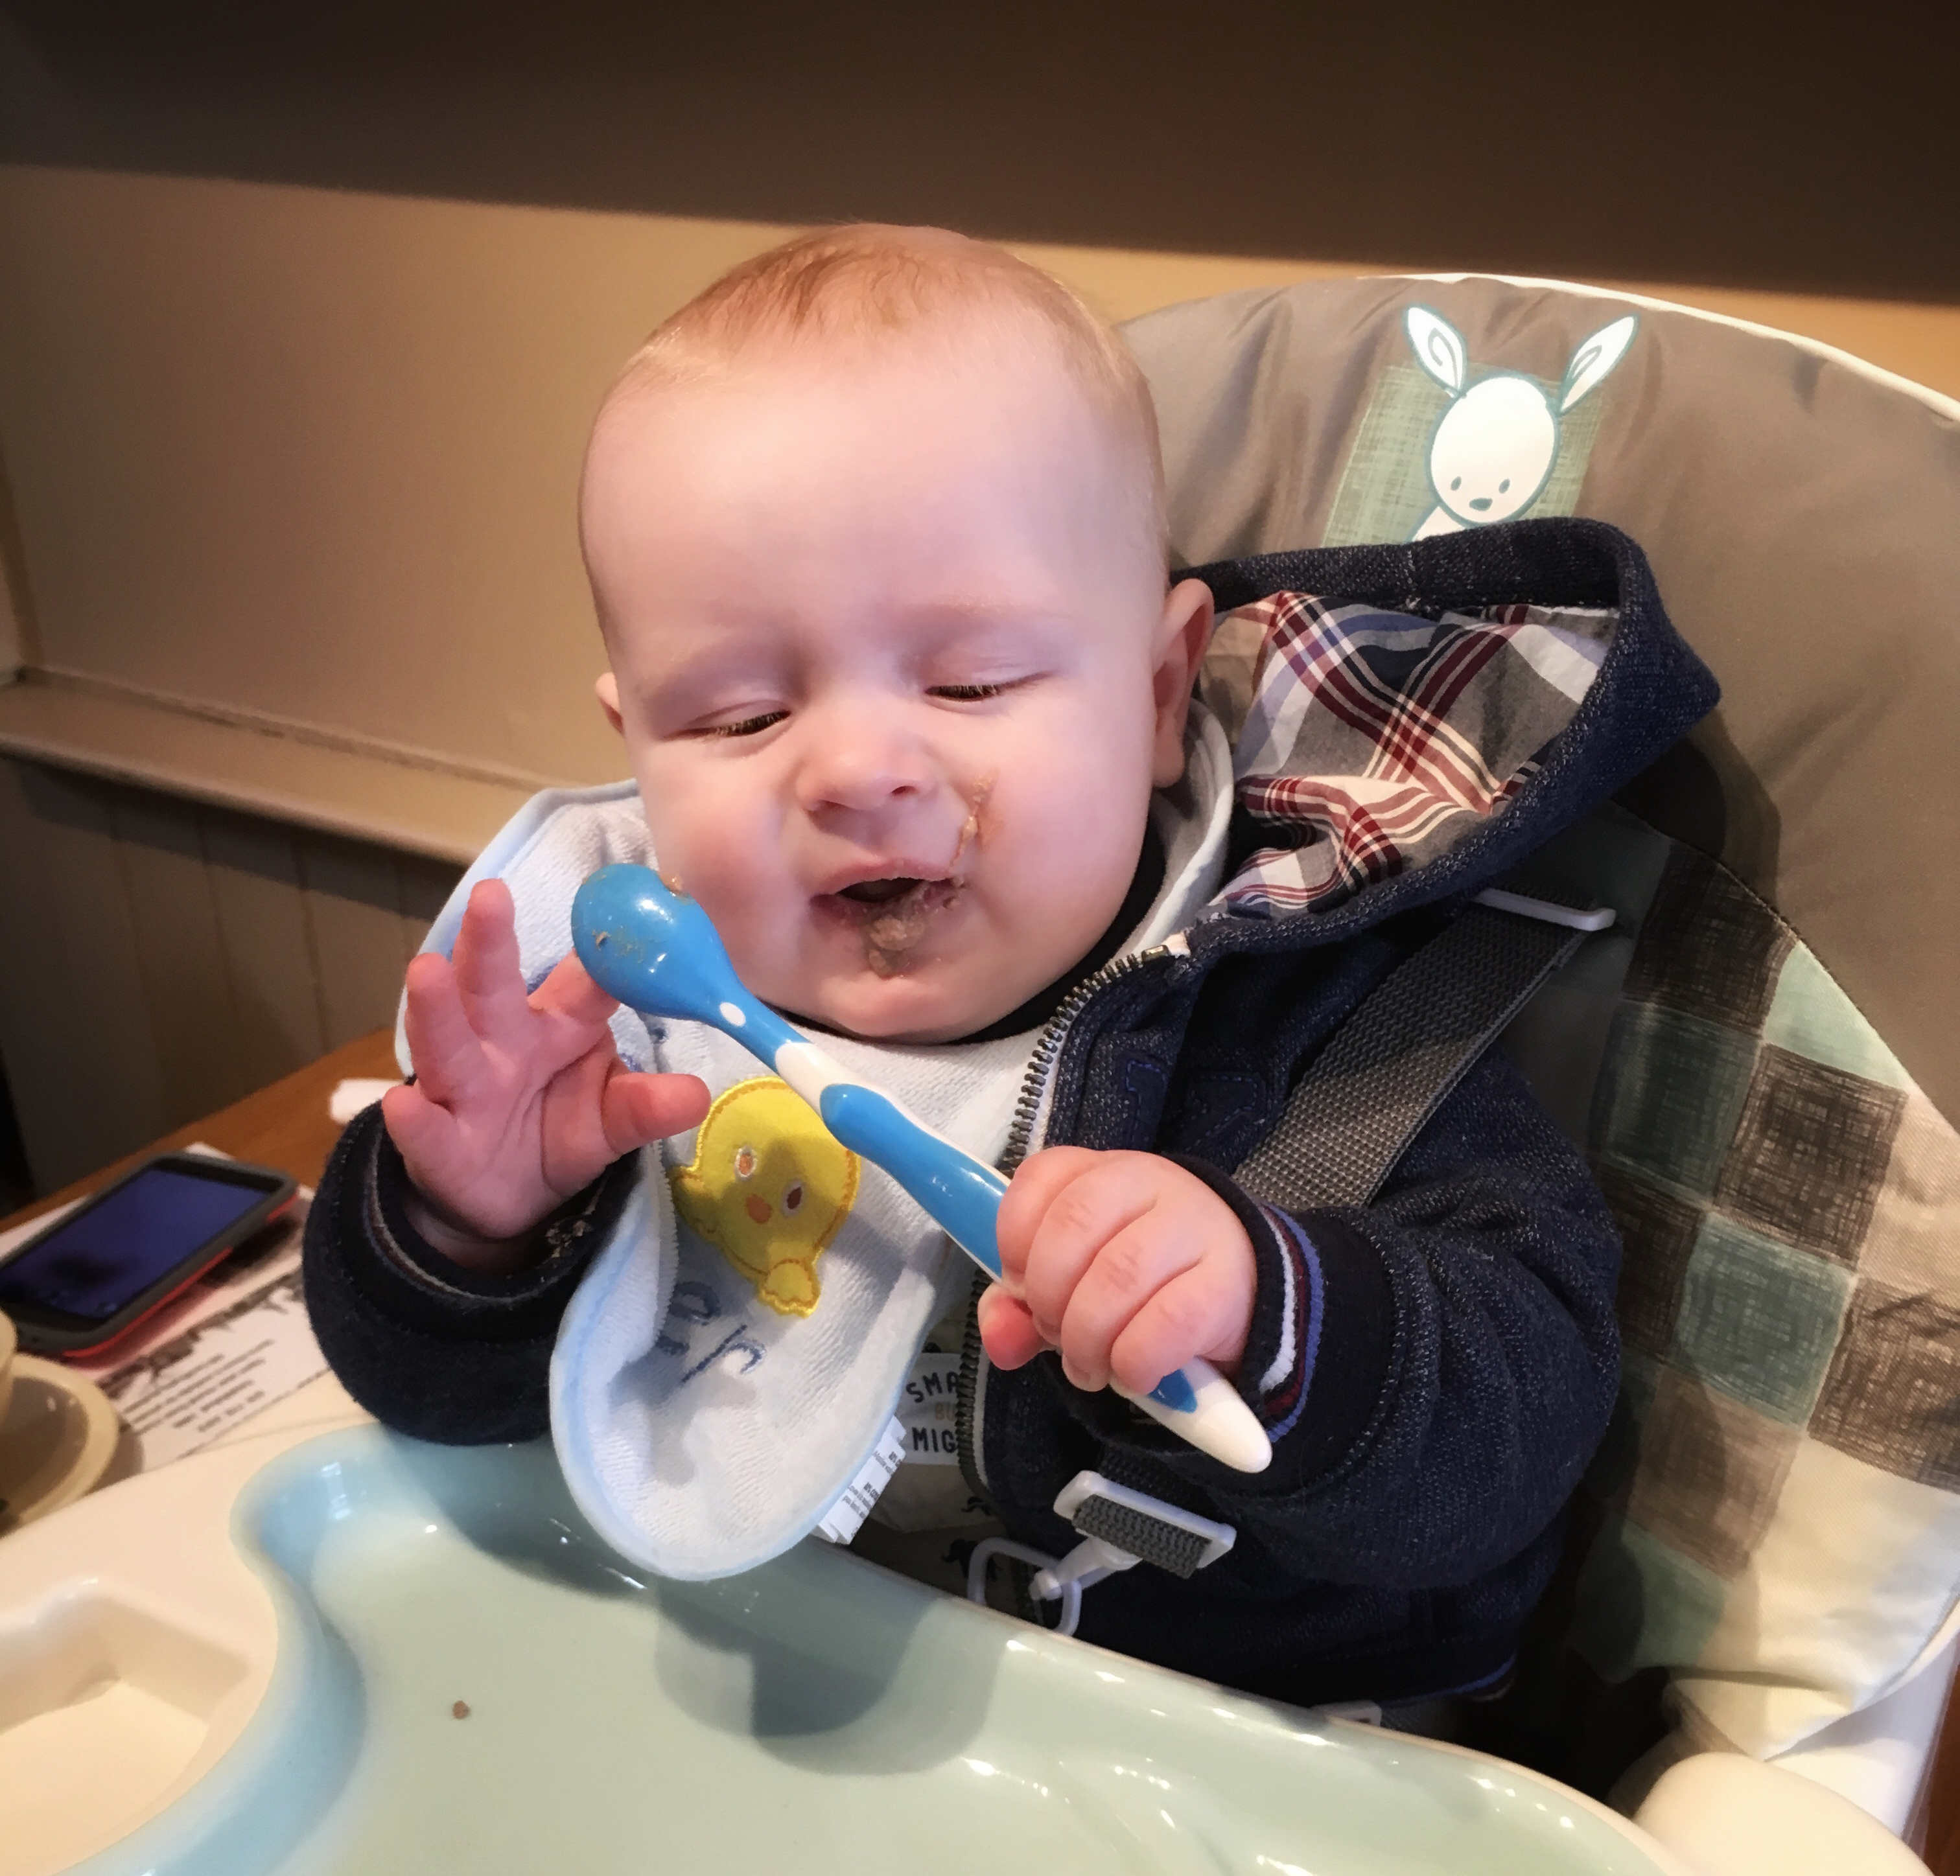 If he keeps making faces like this about beef liver, he might have to have more infant cereals.